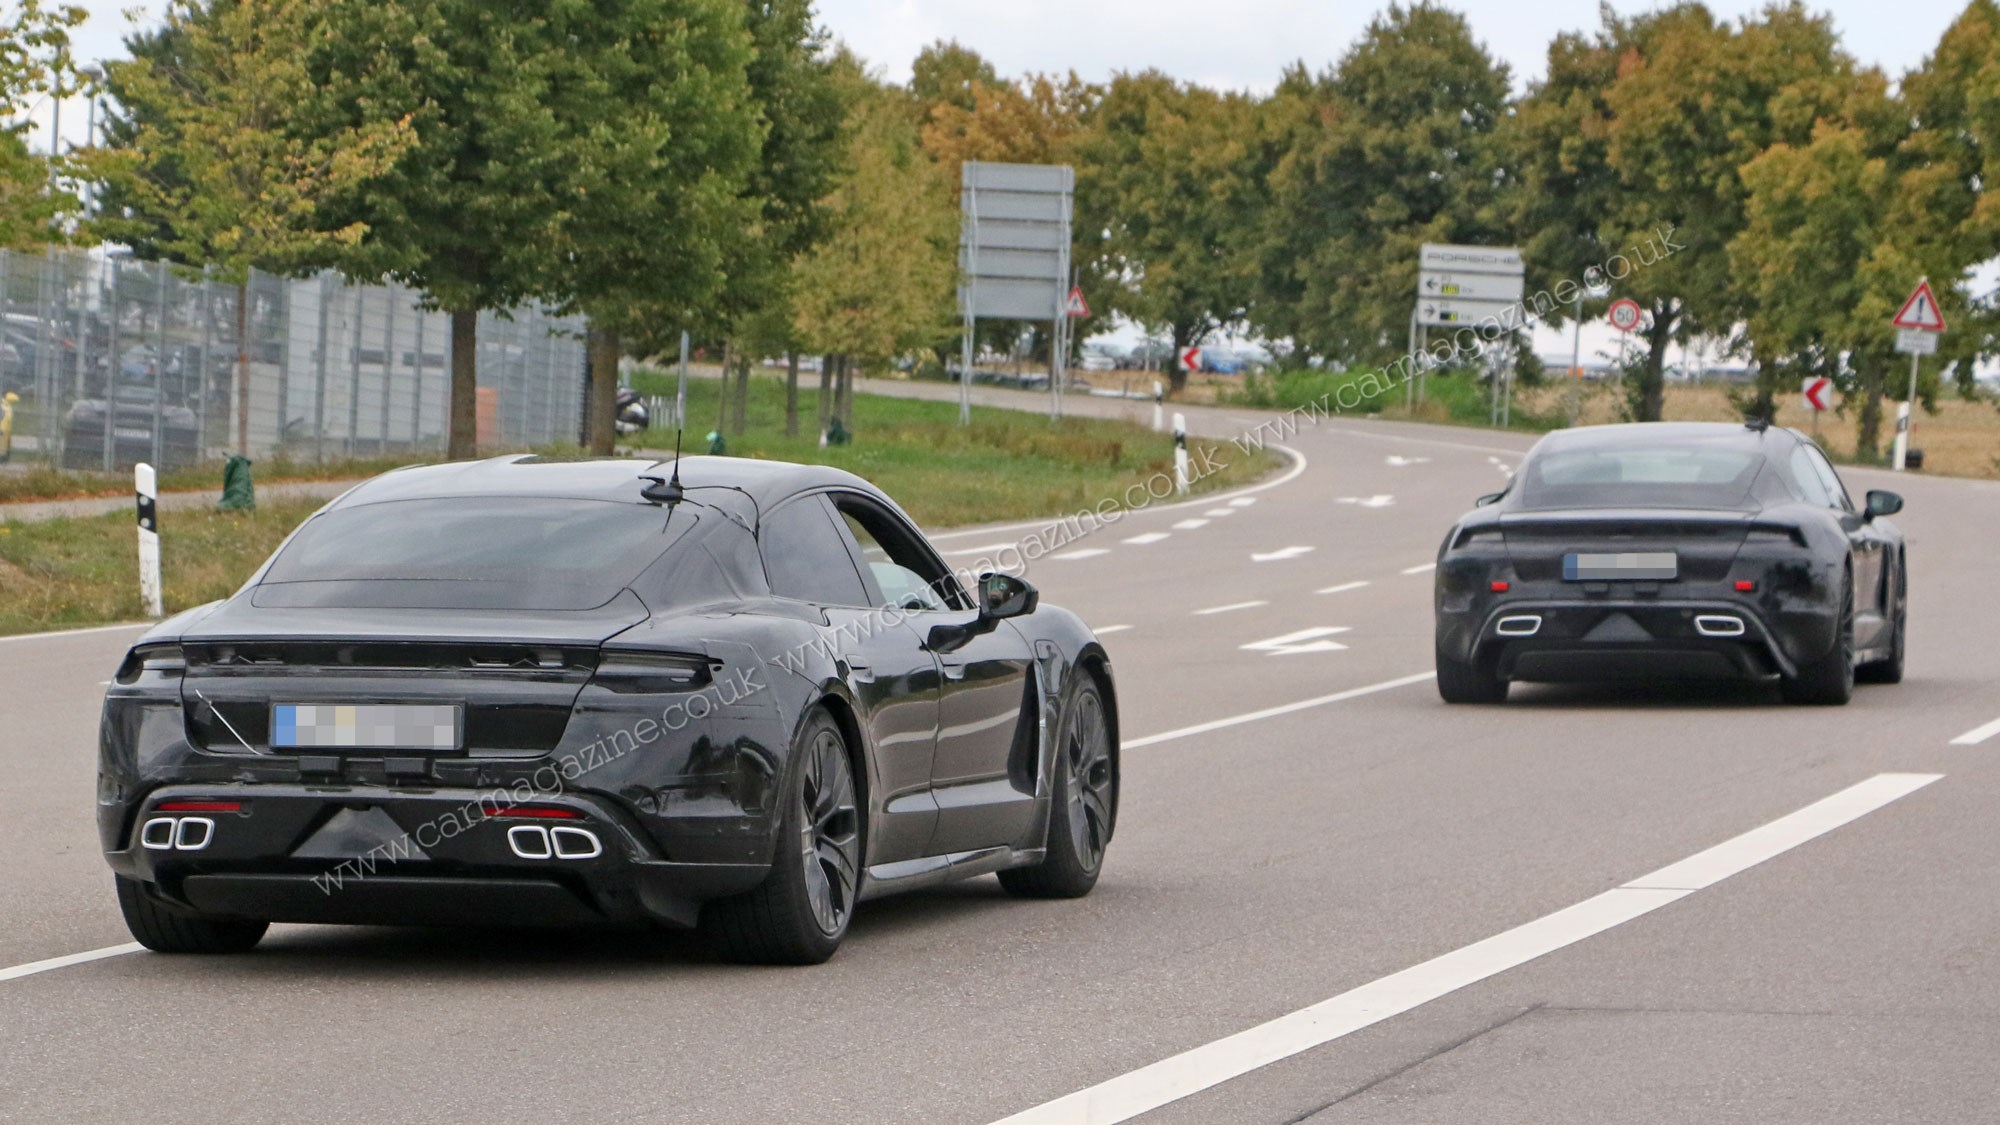 Porsche Taycan: performance model to get Turbo badge | CAR ...